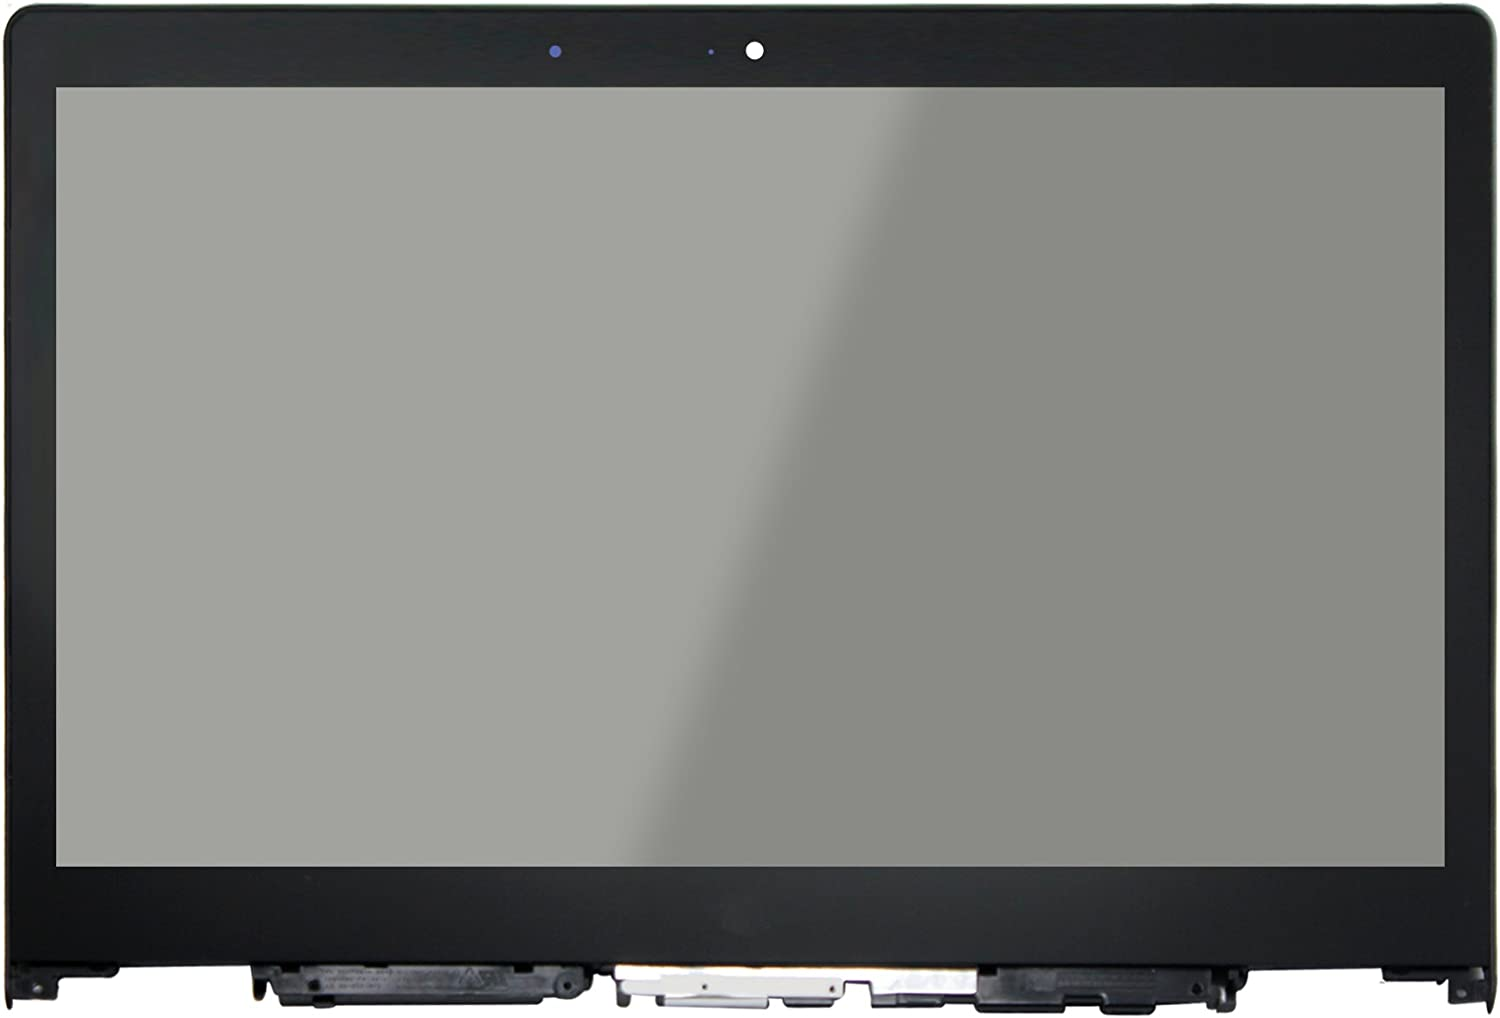 LCDOLED14.0 inch FRU:5D10H35588 FullHD 1080P LED LCD Display Touch Screen Digitizer Assembly + Bezel for Lenovo Yoga 3-1470 80JH 80JH00LSUS 80JH00LJUS 80JH000PUS 80JH00LQUS